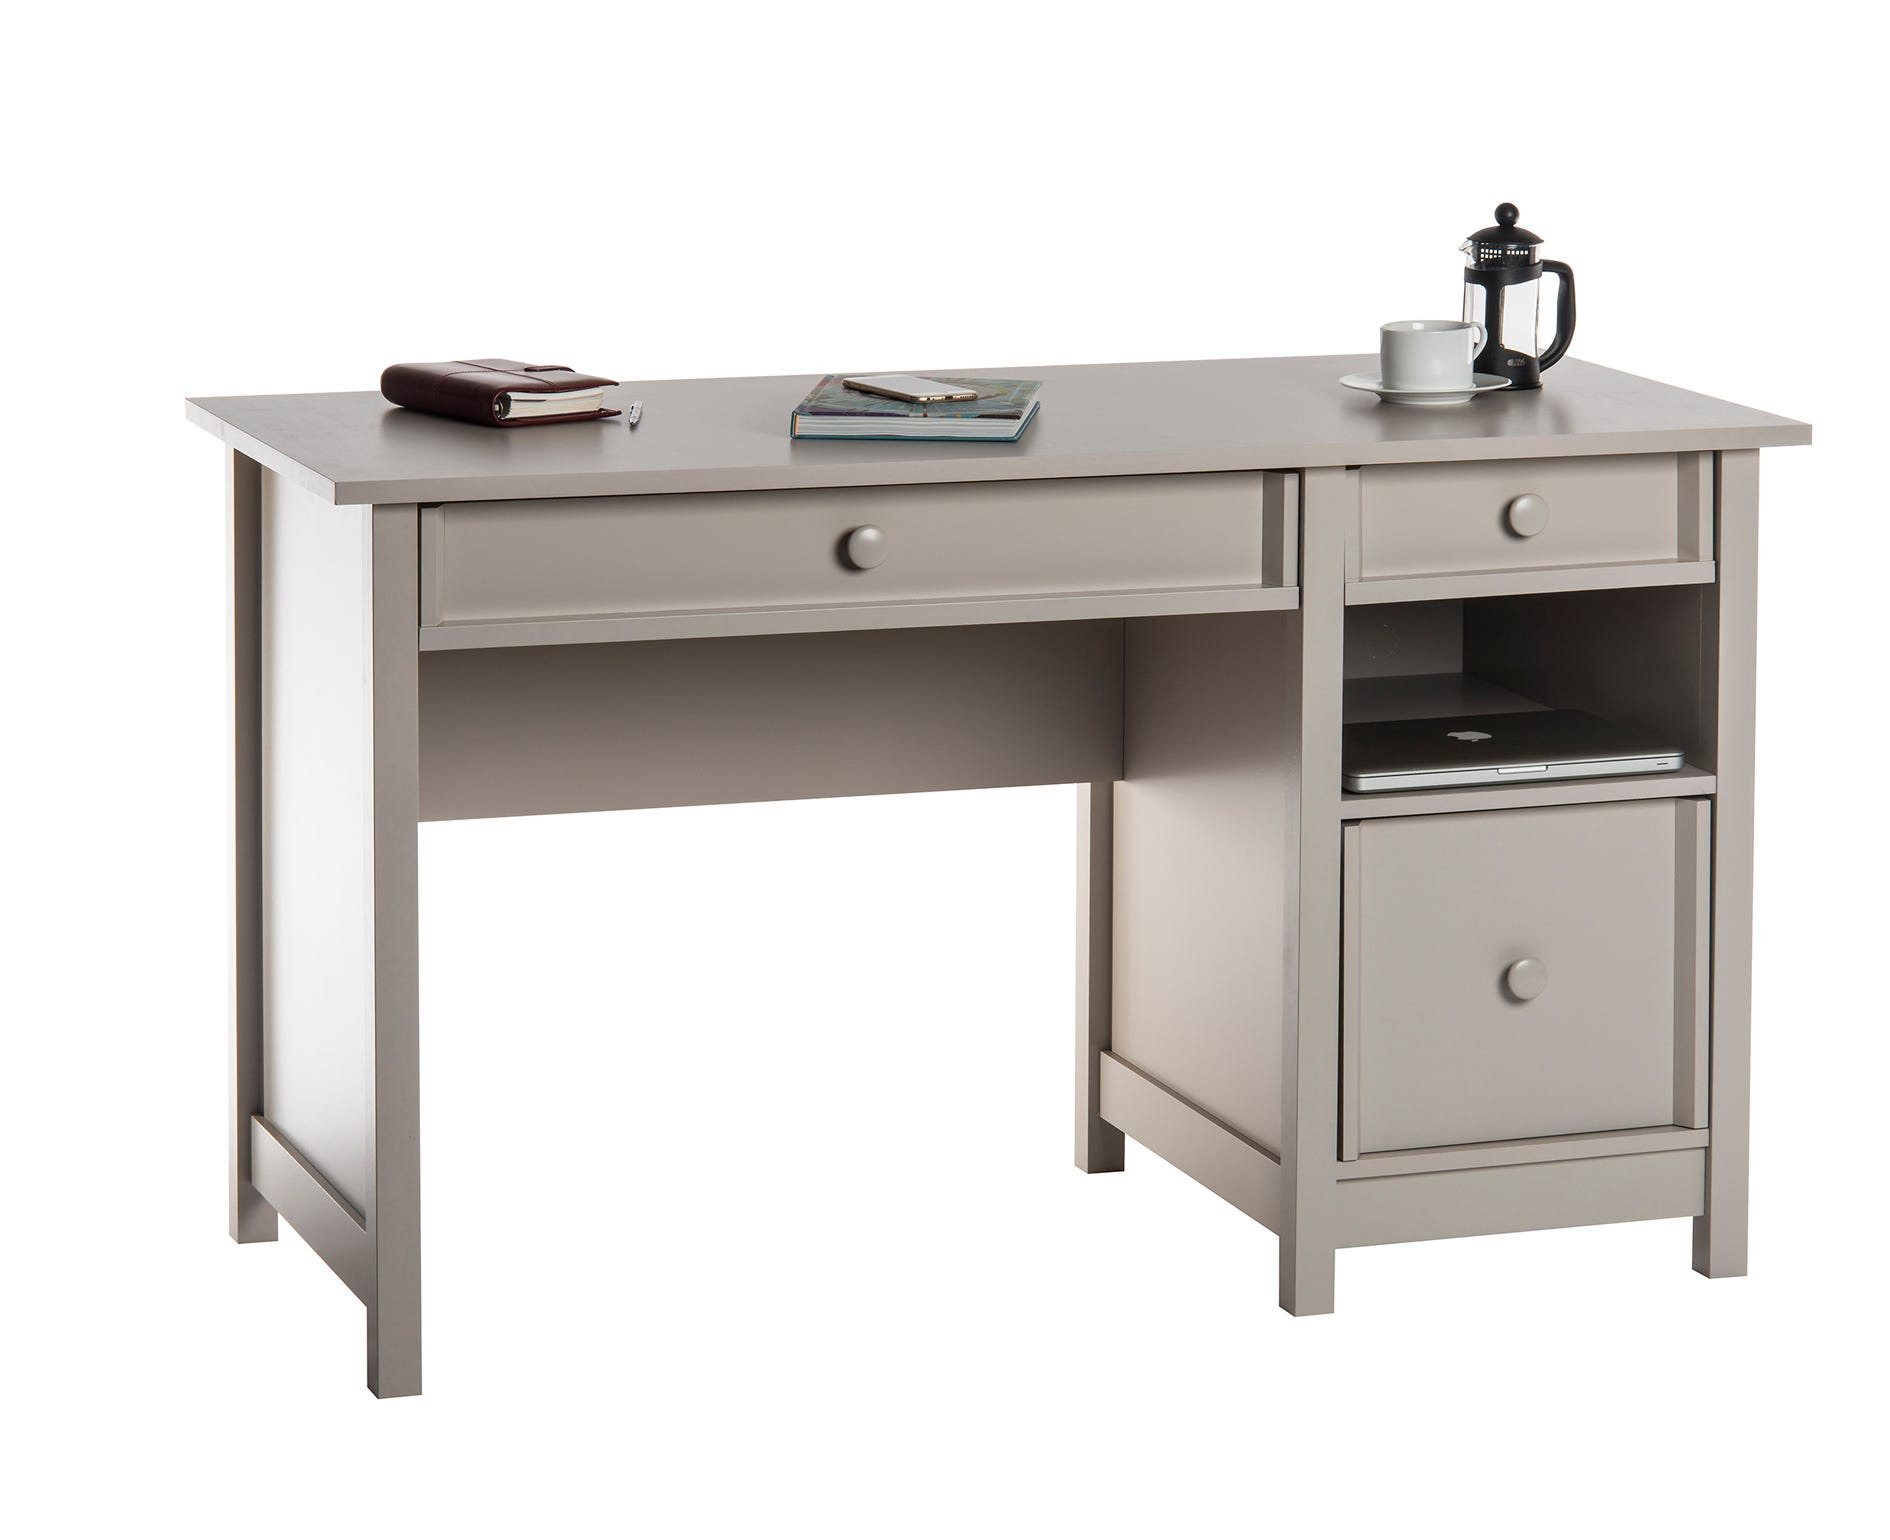 Cotswold Home Office Desk, Coblstn Grey